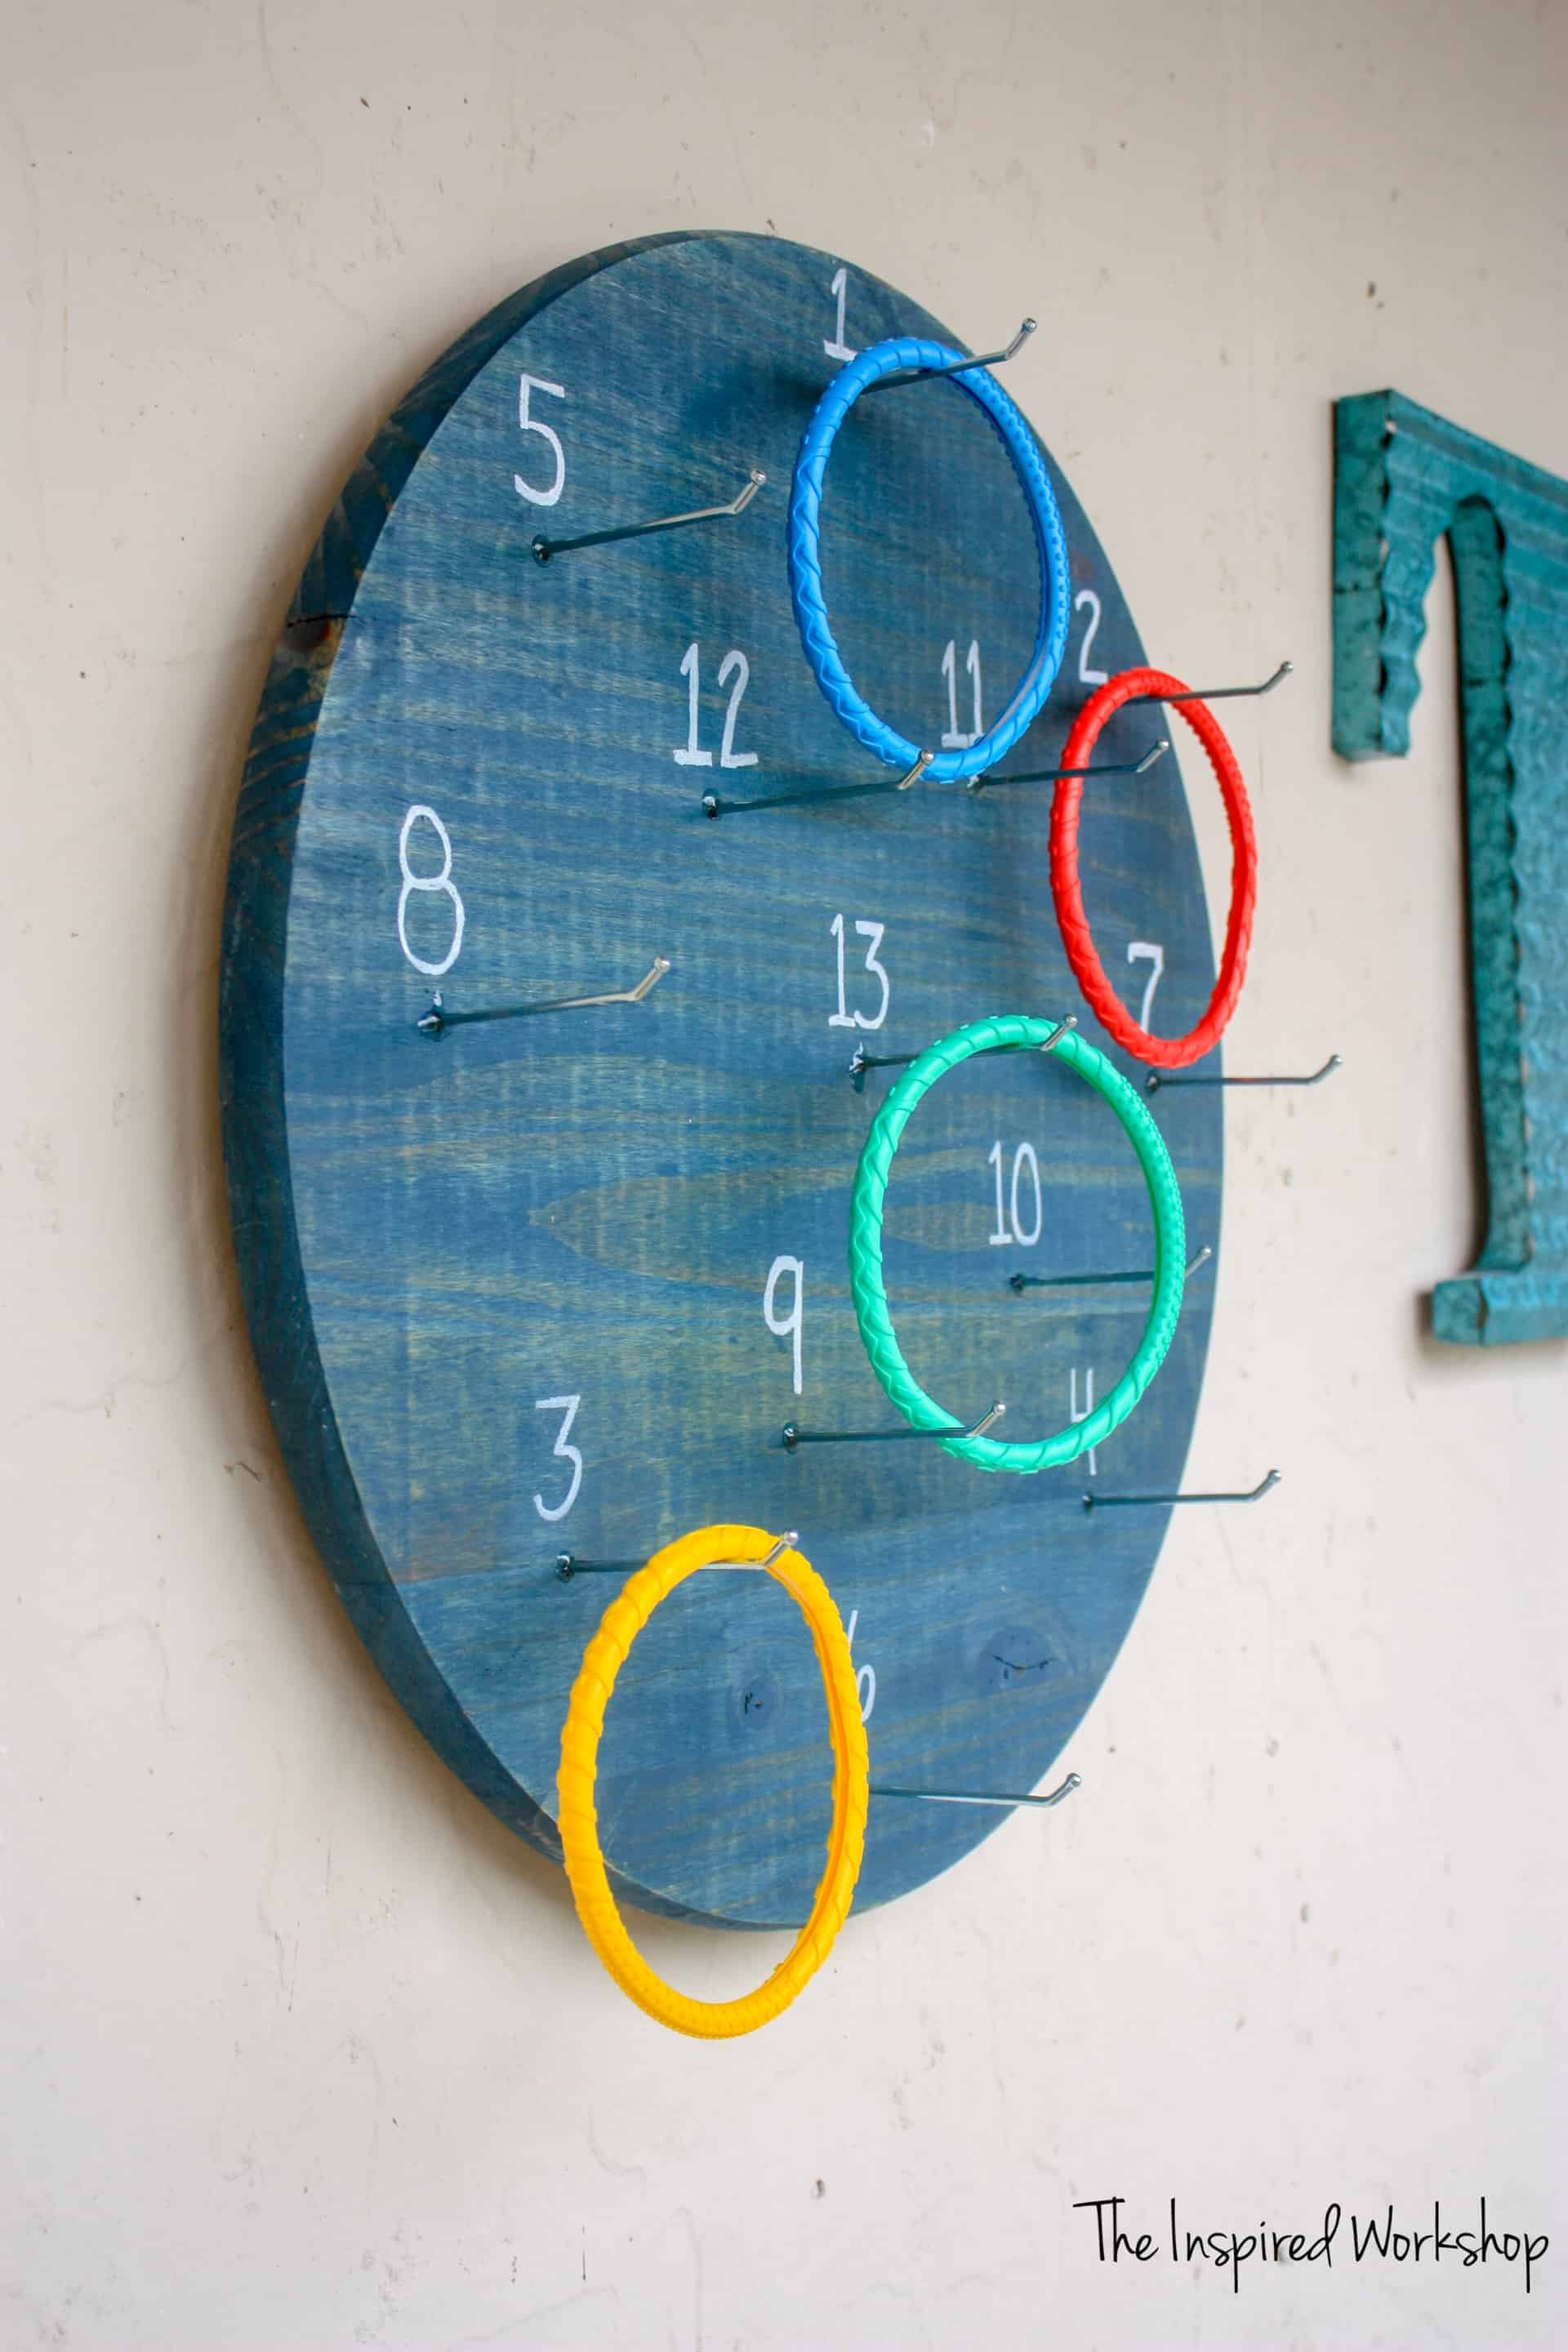 DIY Ring Toss Game - A twist on the classic game where you throw the rings at the wall mounted pegs!